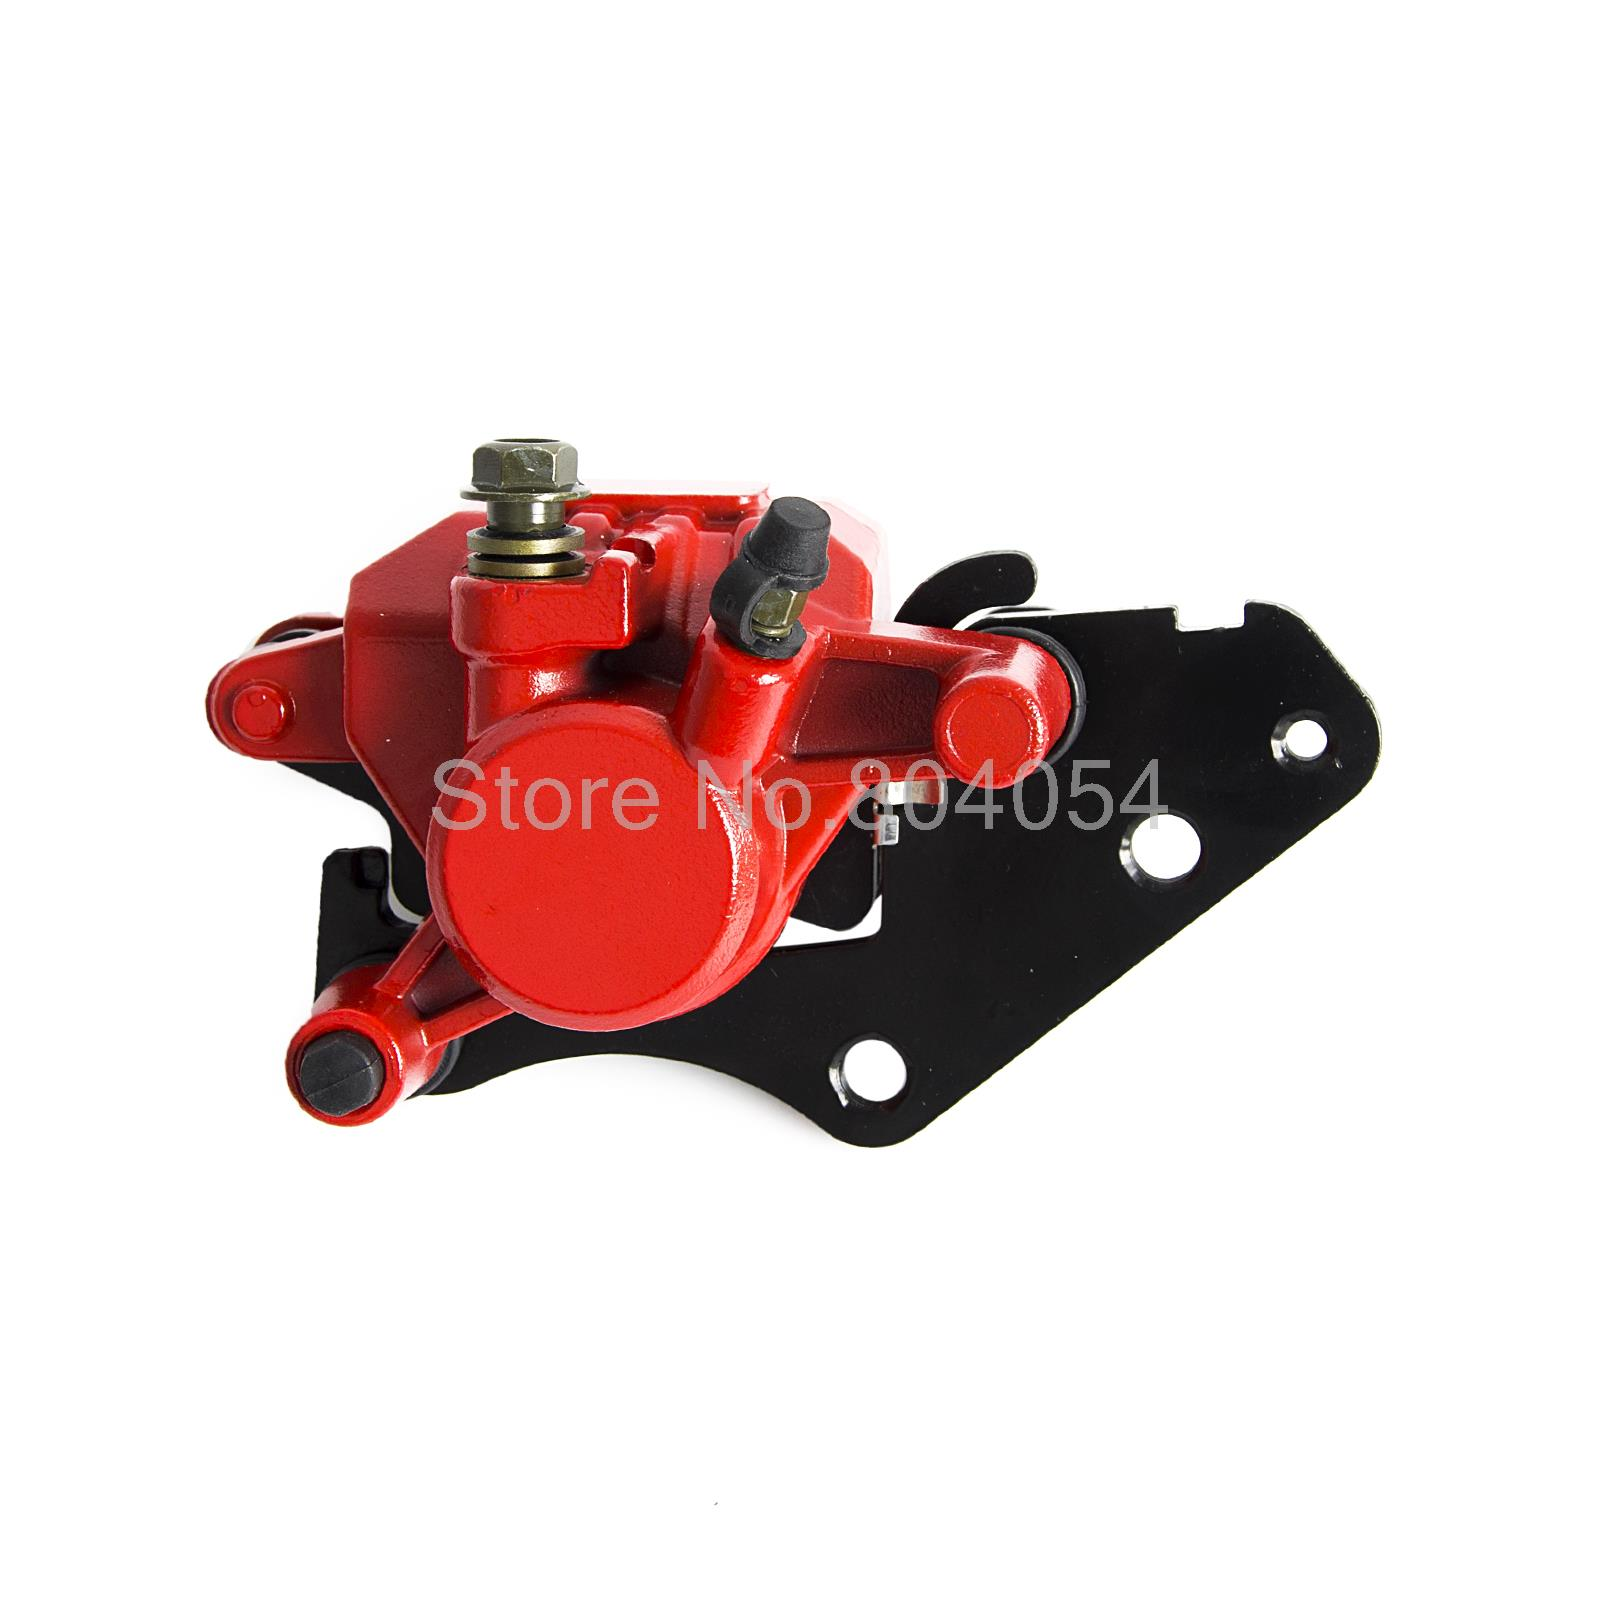 Front Brake Caliper Assy With Pads For Yamaha XC125E Axis Treet 09-13 E53J 10pcs free shipping 216 0707005 216 0707009